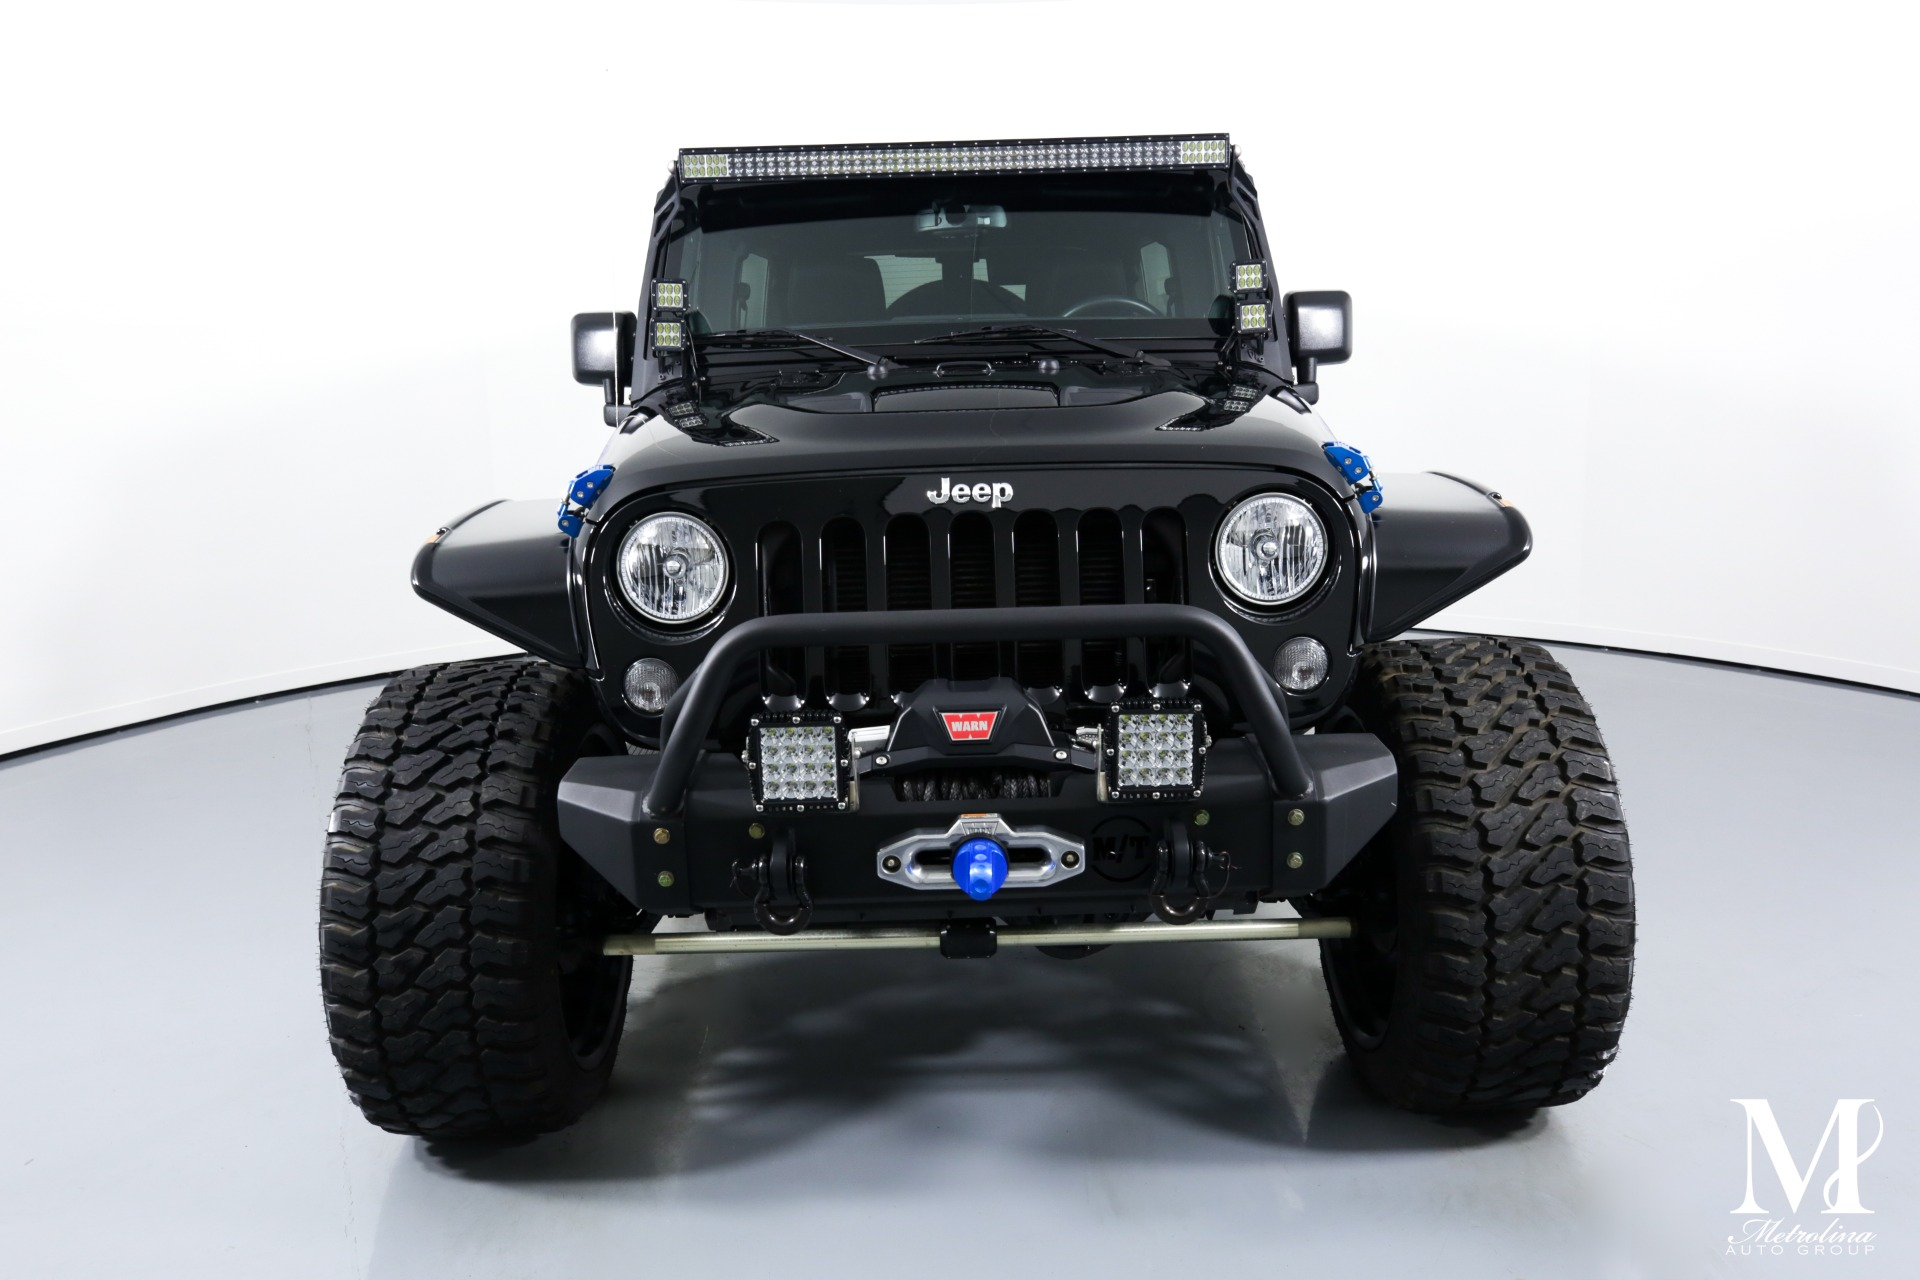 Used 2014 Jeep Wrangler Unlimited Rubicon for sale $47,996 at Metrolina Auto Group in Charlotte NC 28217 - 3